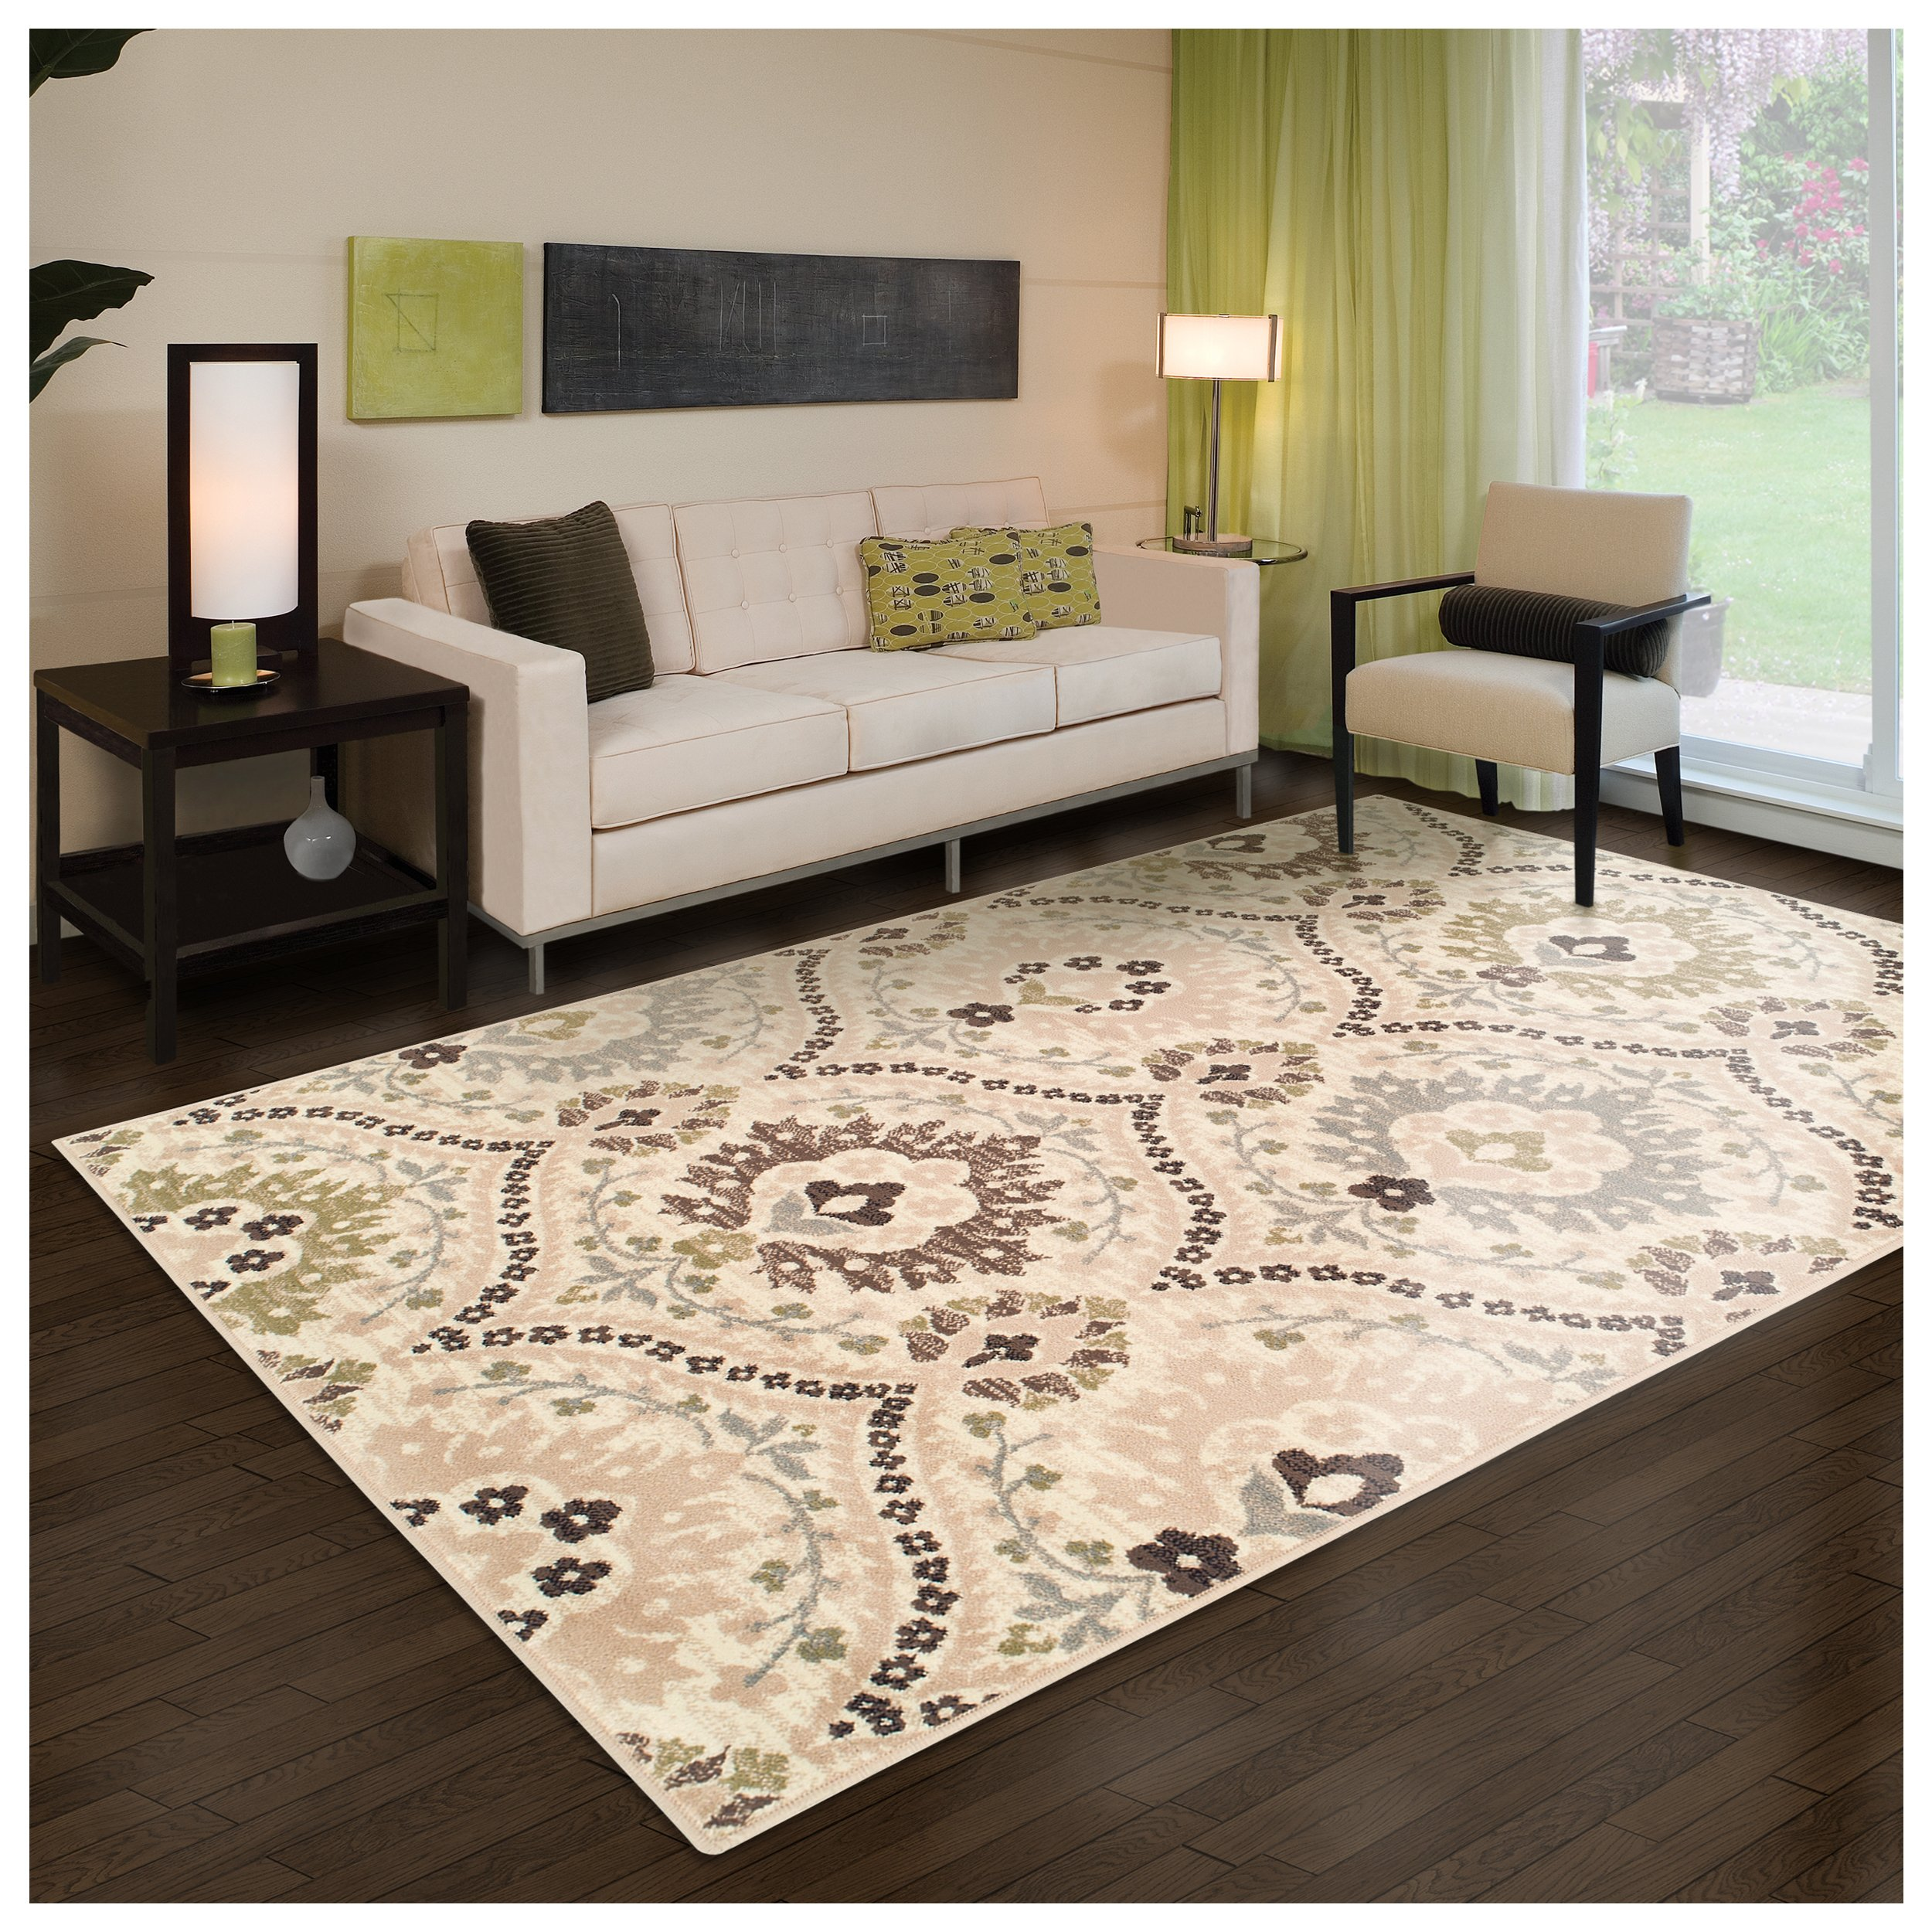 Superior Designer Augusta Collection Area Rug, 8mm Pile Height with Jute Backing, Beautiful Floral Scalloped Pattern, Anti-Static, Water-Repellent Rugs - Beige, 8' x 10' Rug by Superior